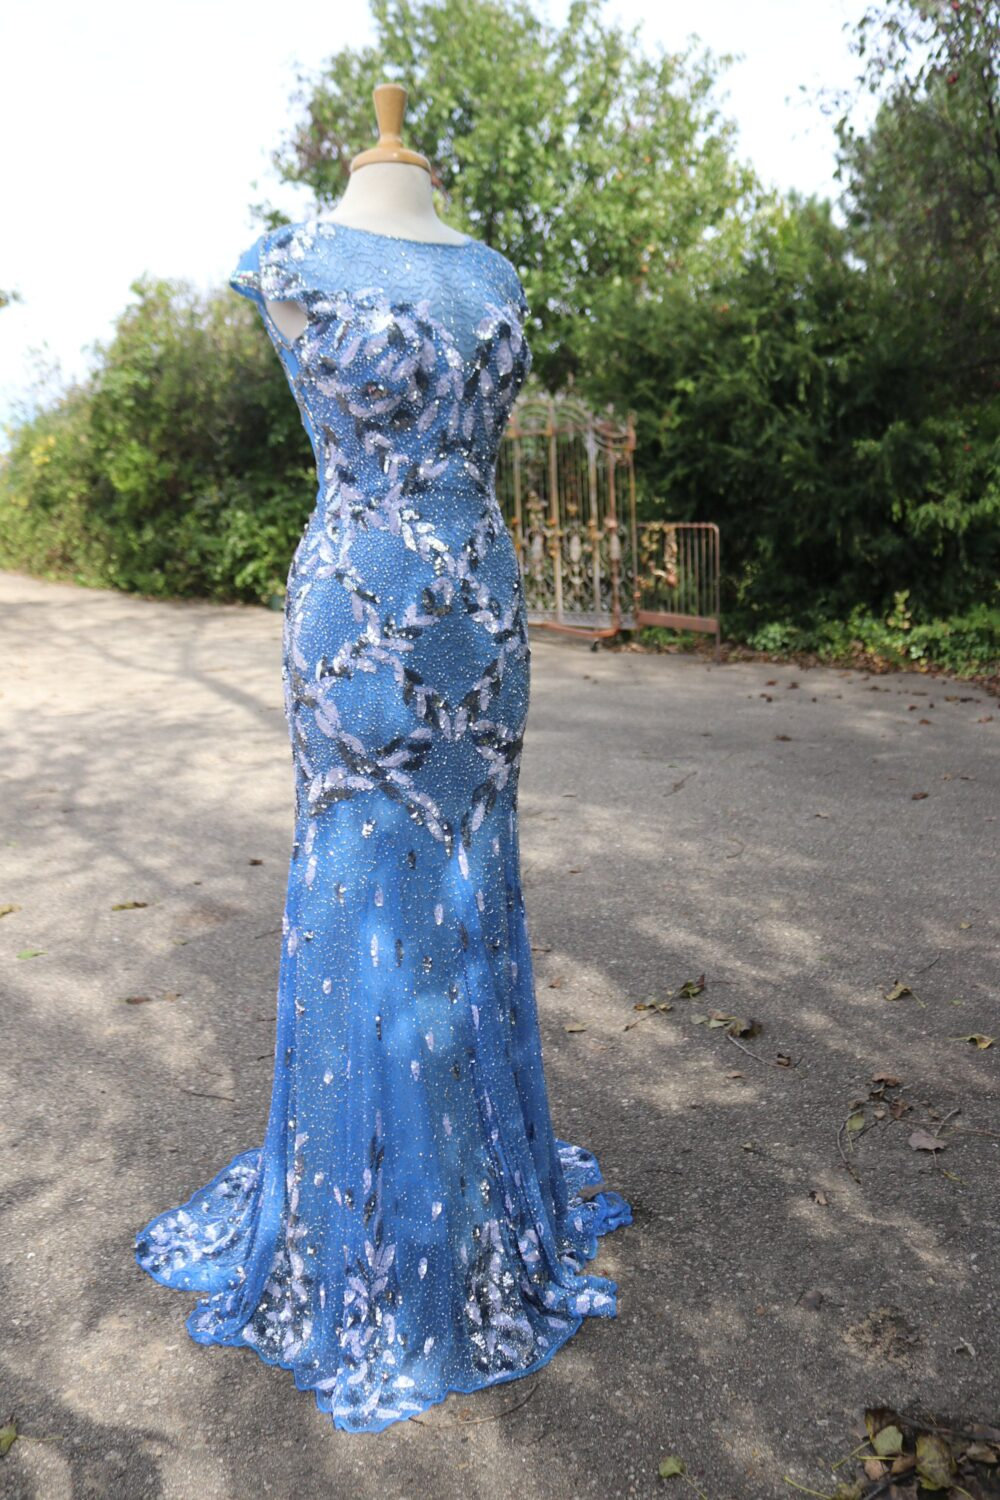 Perriwinkle Blue Silver Beaded Flapper 1920S Dress Alternative Wedding Gown Something Reception